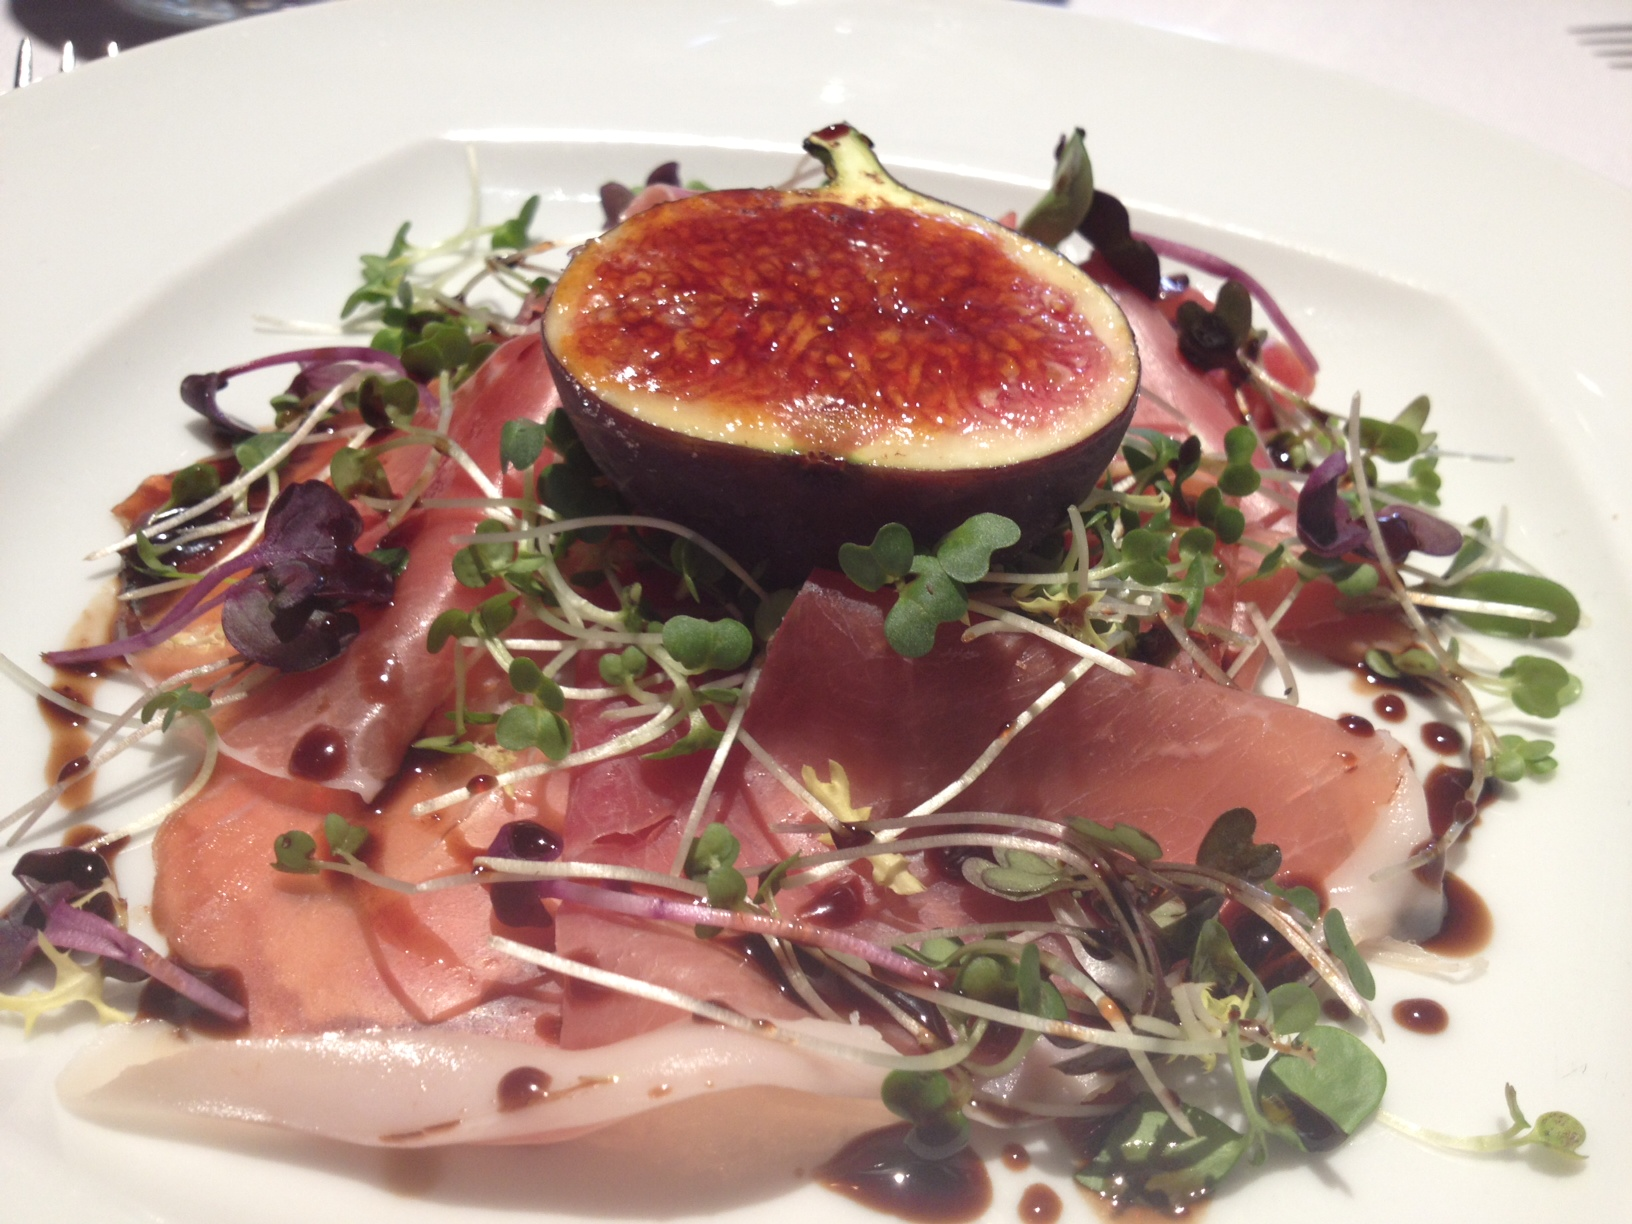 Tony Tobin @ the dining room in Reigate | foodetcblog